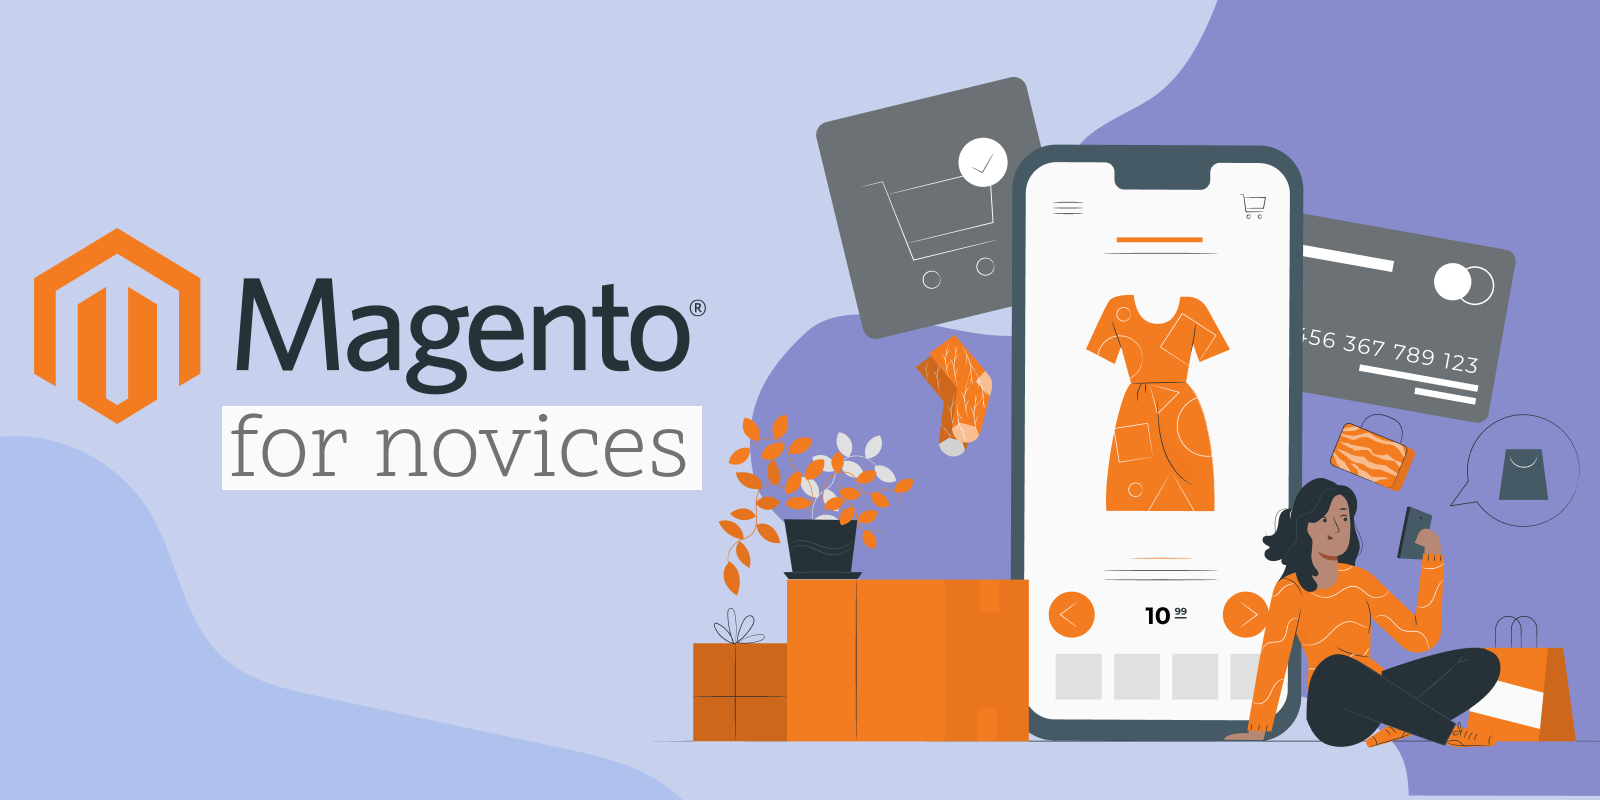 Magento for novices: all they need to know